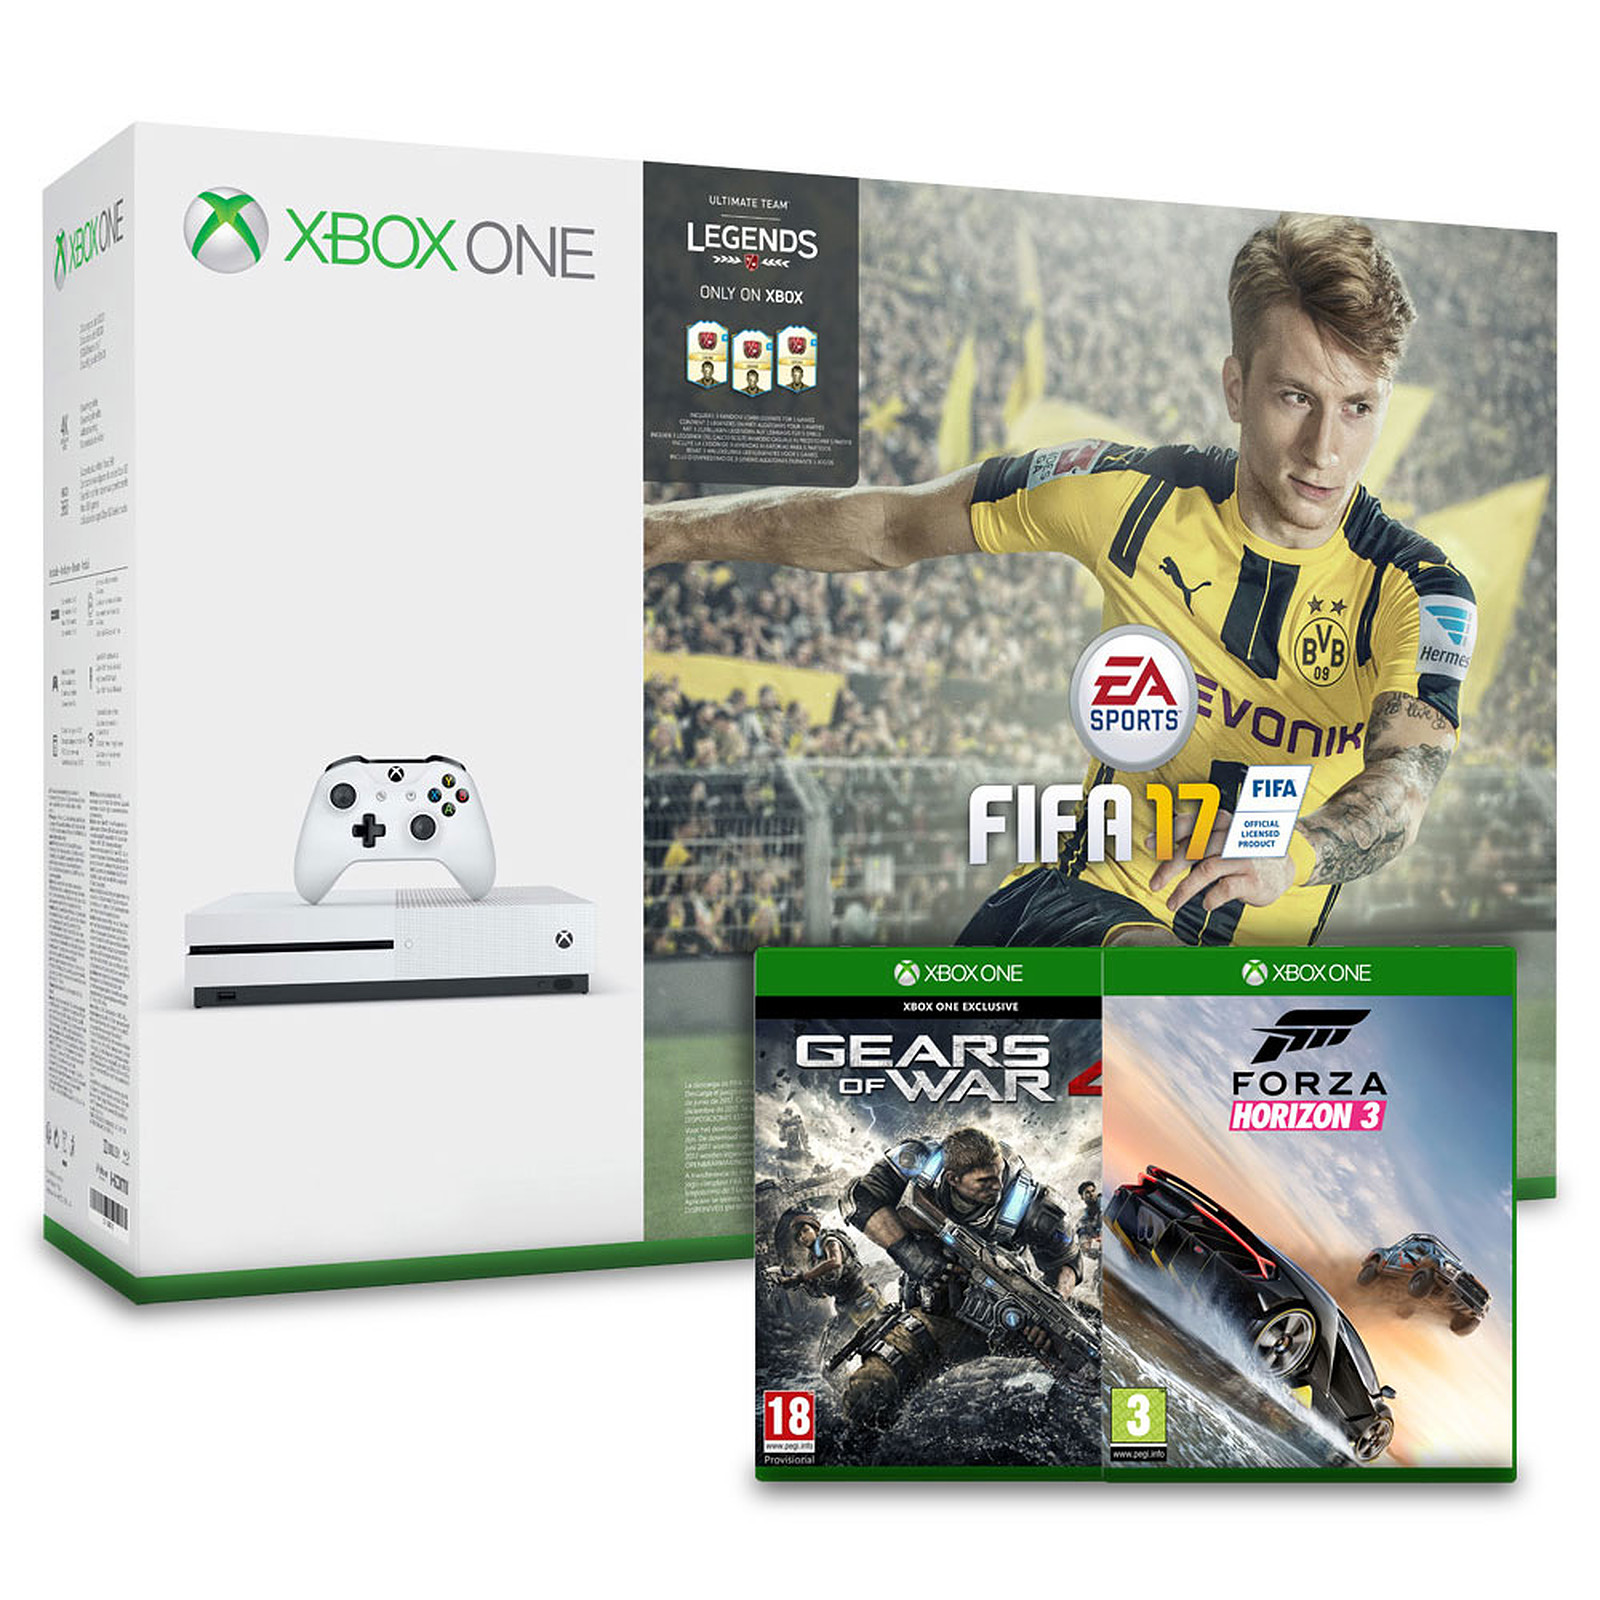 Microsoft Xbox One S (1 To) + FIFA 17 + Gears of War 4 + Forza Horizon 3